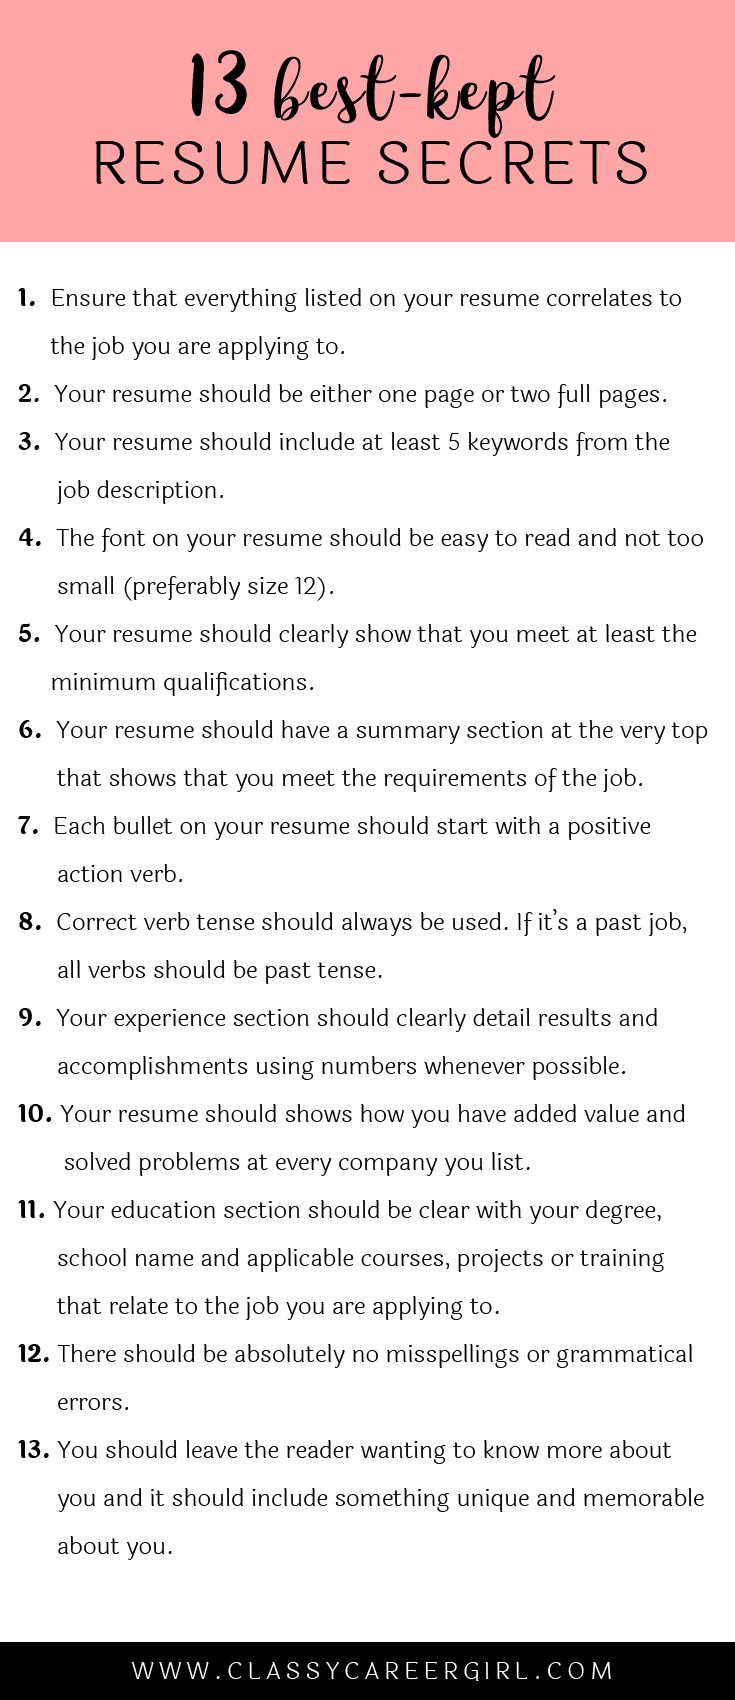 Opposenewapstandardsus  Ravishing  Ideas About Resume On Pinterest  Cv Format Resume Cv And  With Engaging Some Hiring Managers Will Toss Your Resume Out If You Dont Know These  With Enchanting Personal Resume Examples Also Cinematographer Resume In Addition Manicurist Resume And Resume Template Student As Well As What Is The Best Resume Builder Additionally Investment Banking Associate Resume From Pinterestcom With Opposenewapstandardsus  Engaging  Ideas About Resume On Pinterest  Cv Format Resume Cv And  With Enchanting Some Hiring Managers Will Toss Your Resume Out If You Dont Know These  And Ravishing Personal Resume Examples Also Cinematographer Resume In Addition Manicurist Resume From Pinterestcom